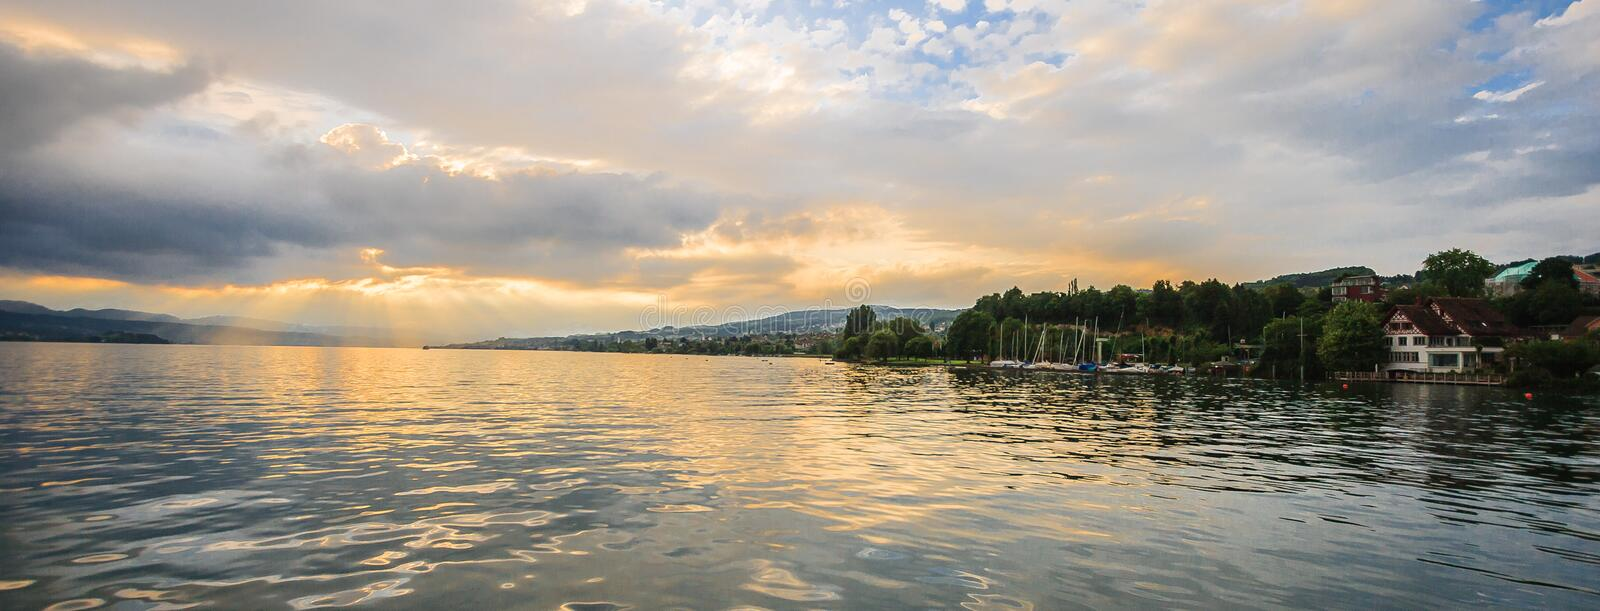 Panoramic summer view of boat cruise excursion landscape on Zurichsee with beautiful sunset shining light through clouds reflected royalty free stock photography